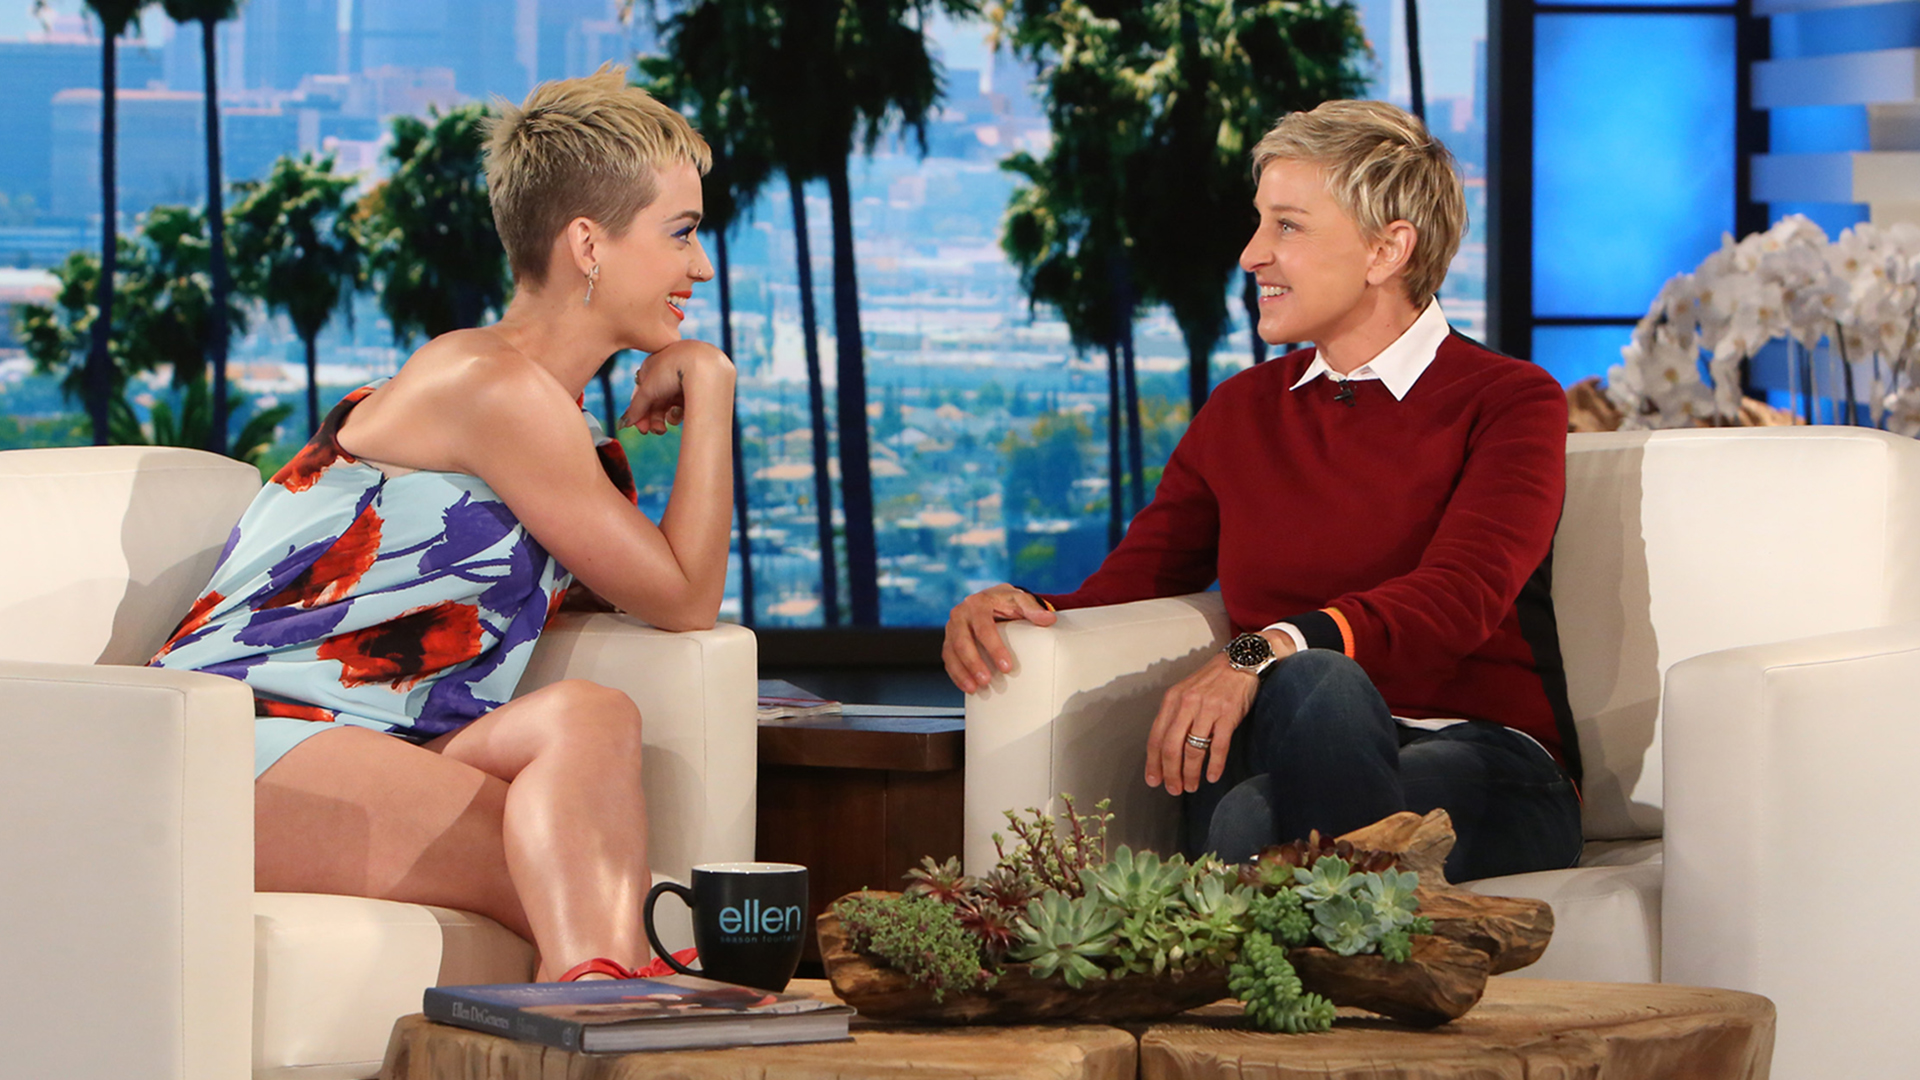 Katy Perry Tells Ellen Degeneres The Real Reason Behind